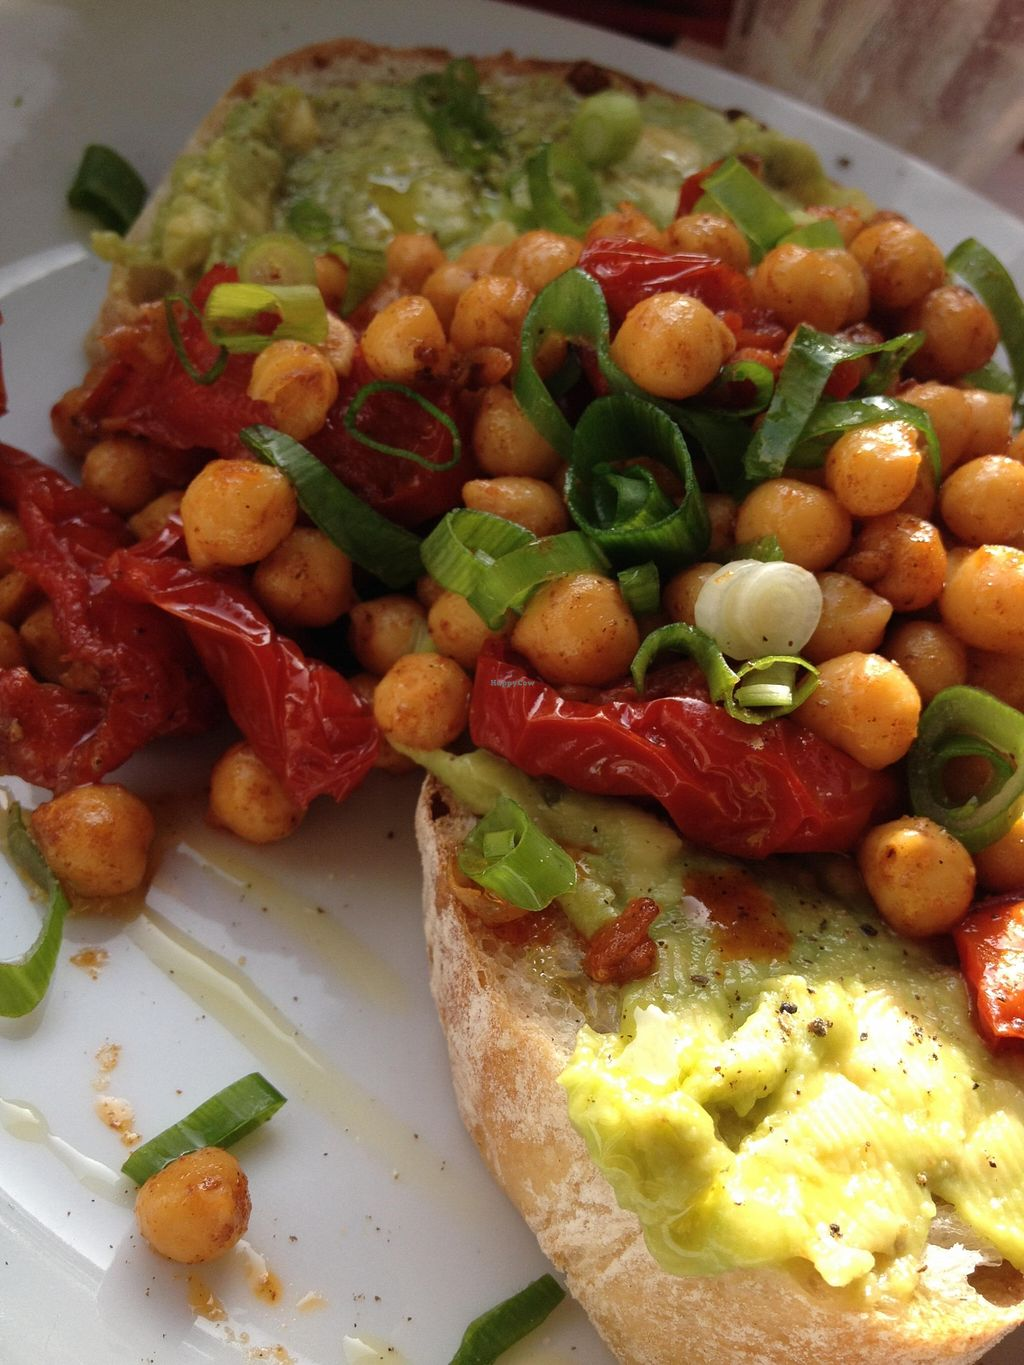 """Photo of Espresso Library  by <a href=""""/members/profile/chapstick"""">chapstick</a> <br/>Spiced chickpeas and avocado on sourdough toast <br/> October 28, 2015  - <a href='/contact/abuse/image/65013/122947'>Report</a>"""